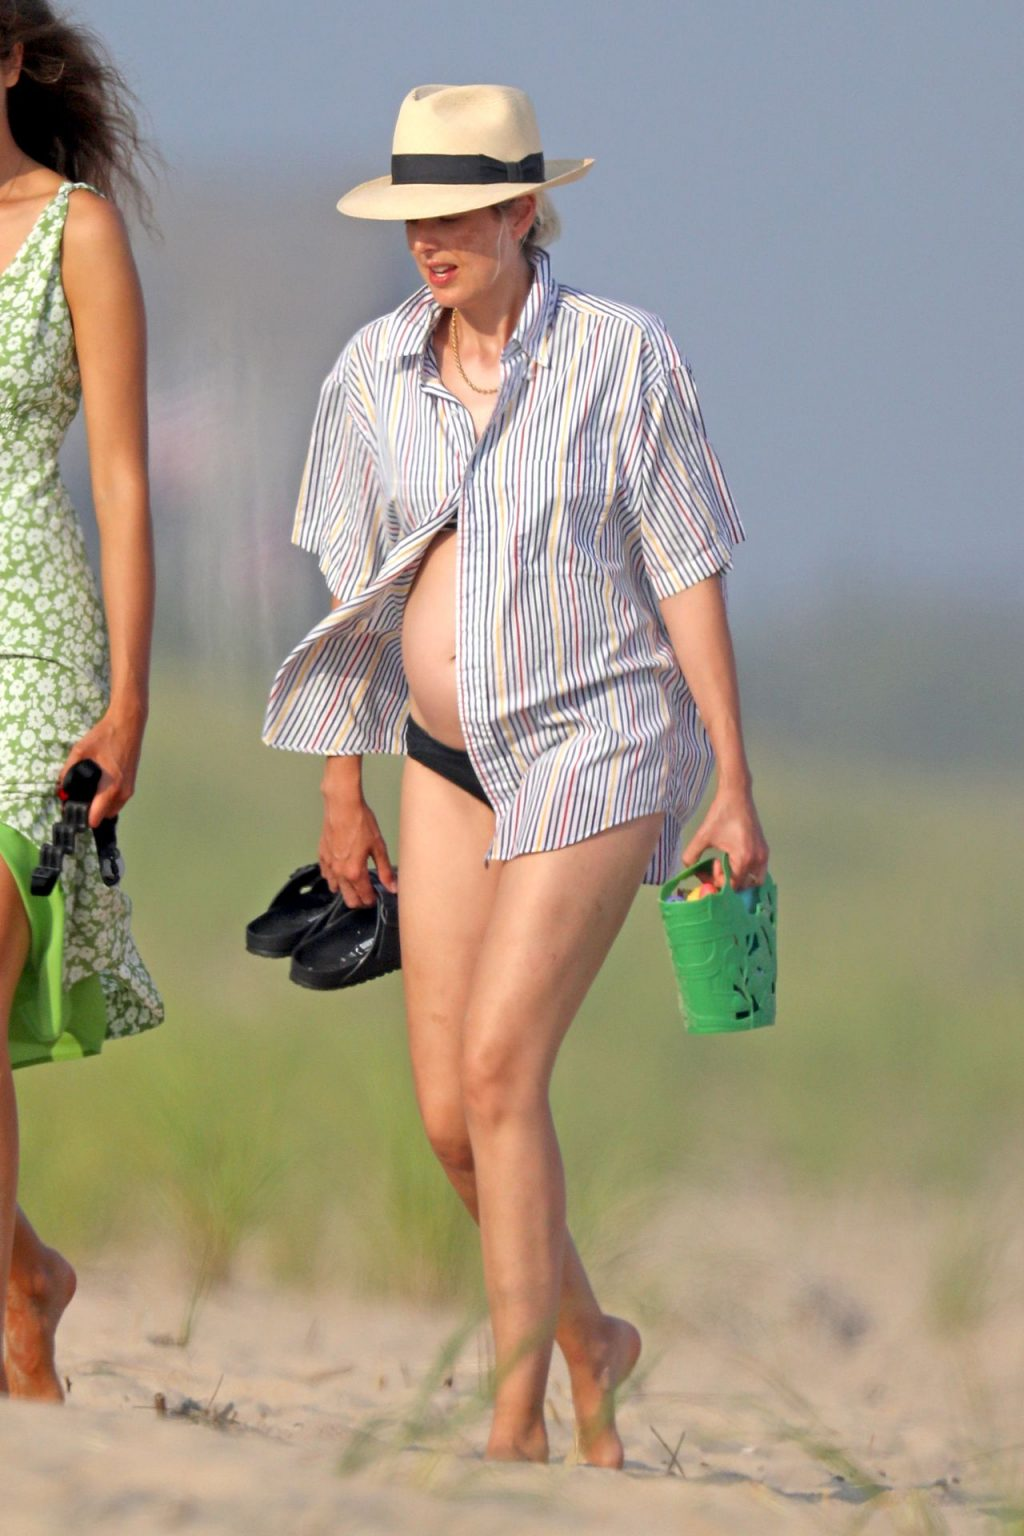 Agyness Deyn is Spotted in a Bikini on the Beach in The Hamptons (25 Photos)